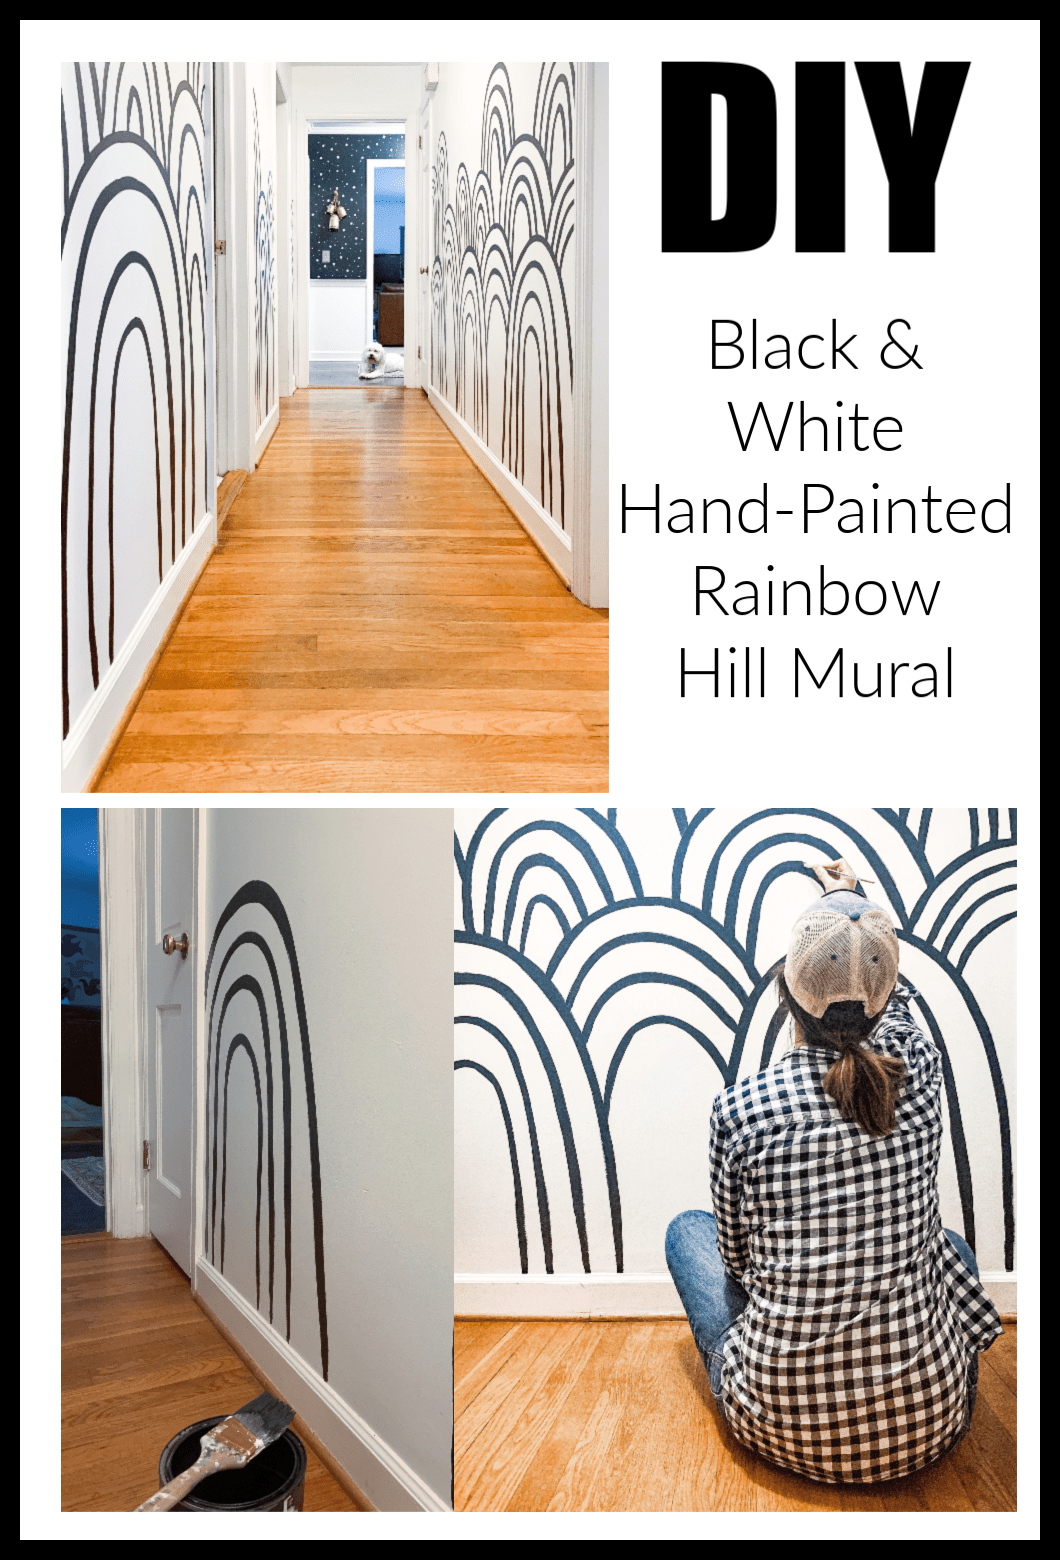 Diy Hand Painted Black And White Rainbow Hills Mural Mural Hand